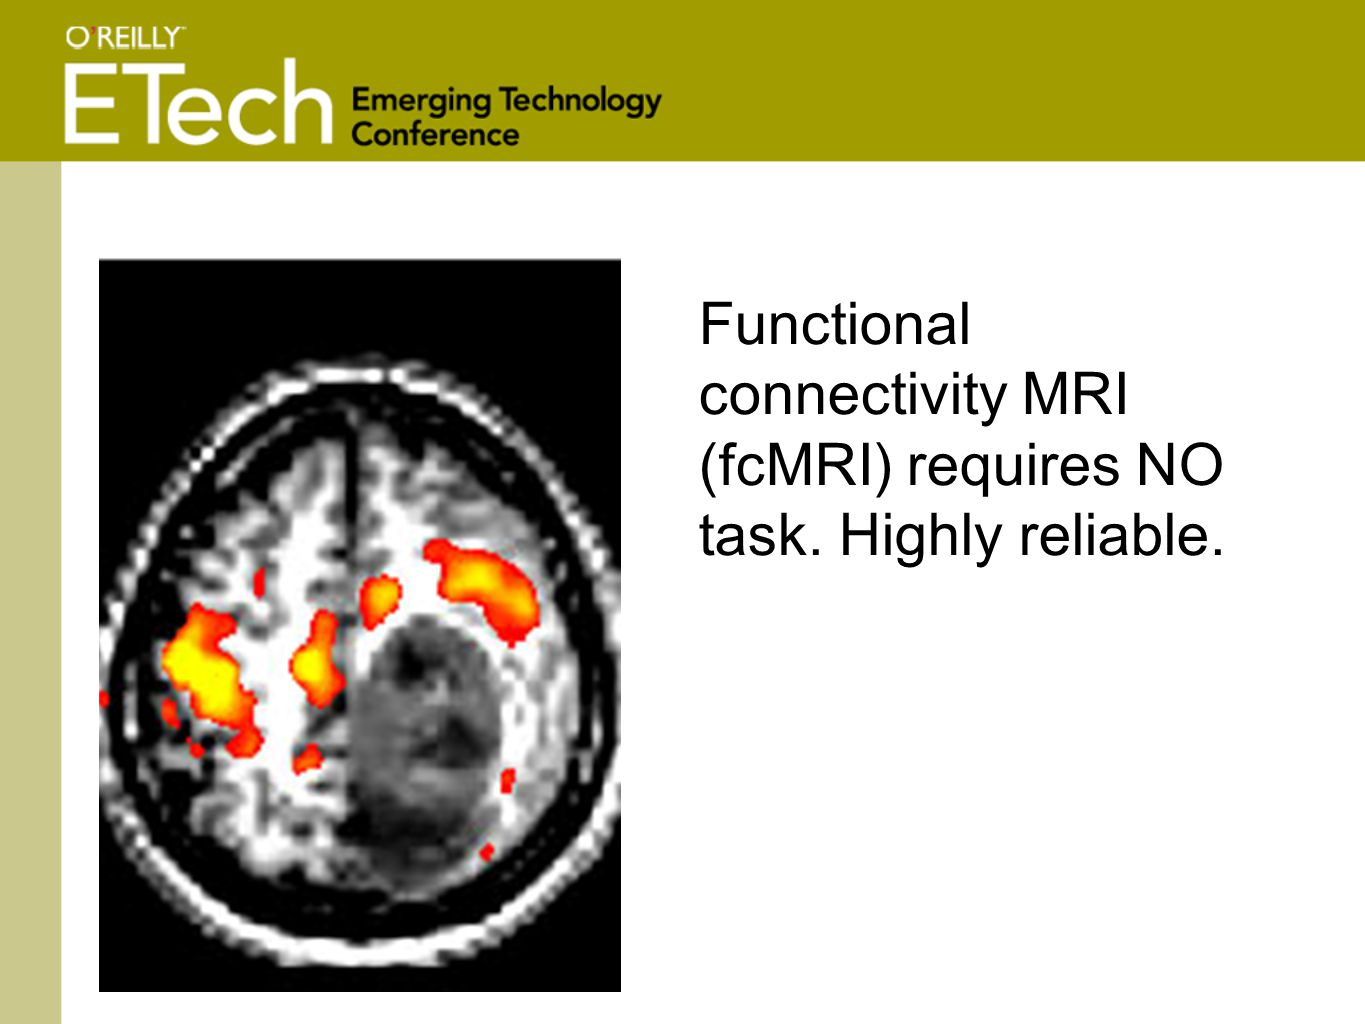 Functional connectivity MRI (fcMRI) requires NO task. Highly reliable.